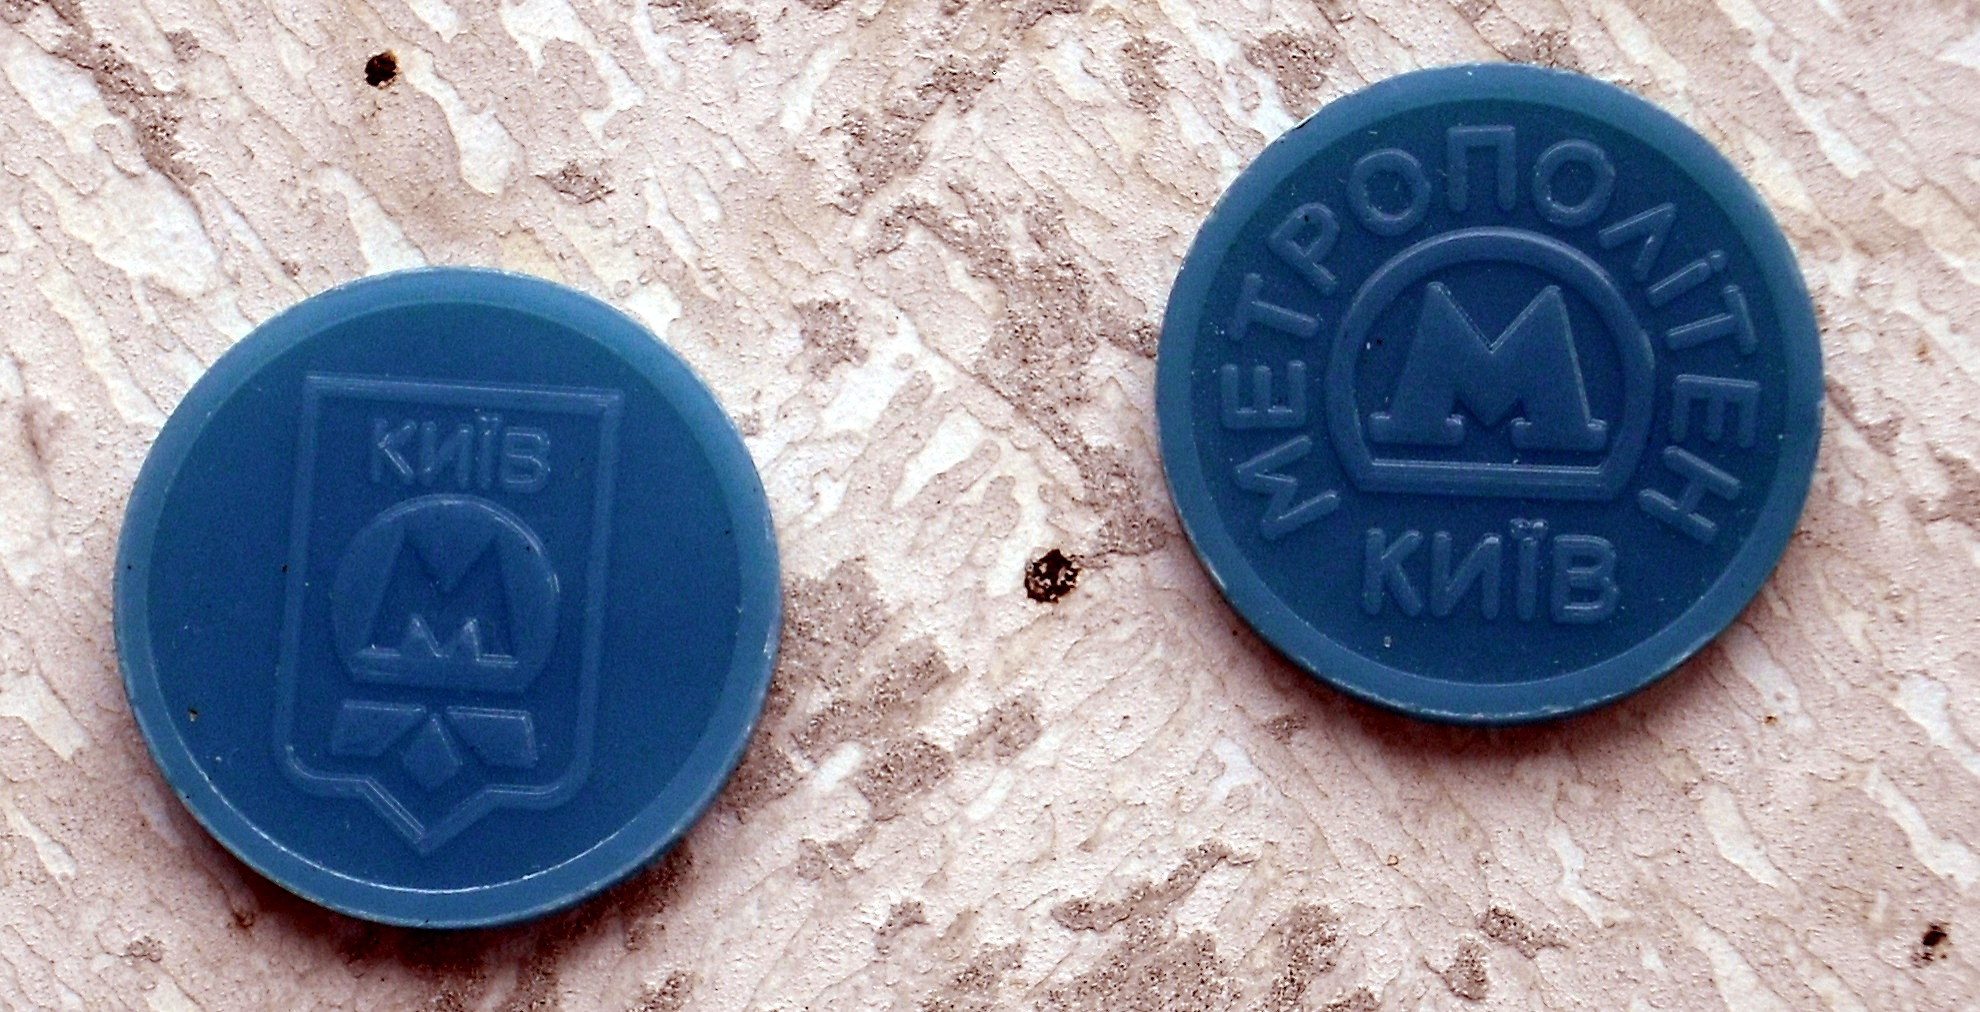 Kiev subway tokens that are inserted into the gate to get access to the platfrom. Each token entitles to a one-directioned ride of a mximum of 3 hours. Price for one: 0,08 €uro. Photo: wikimedia commons